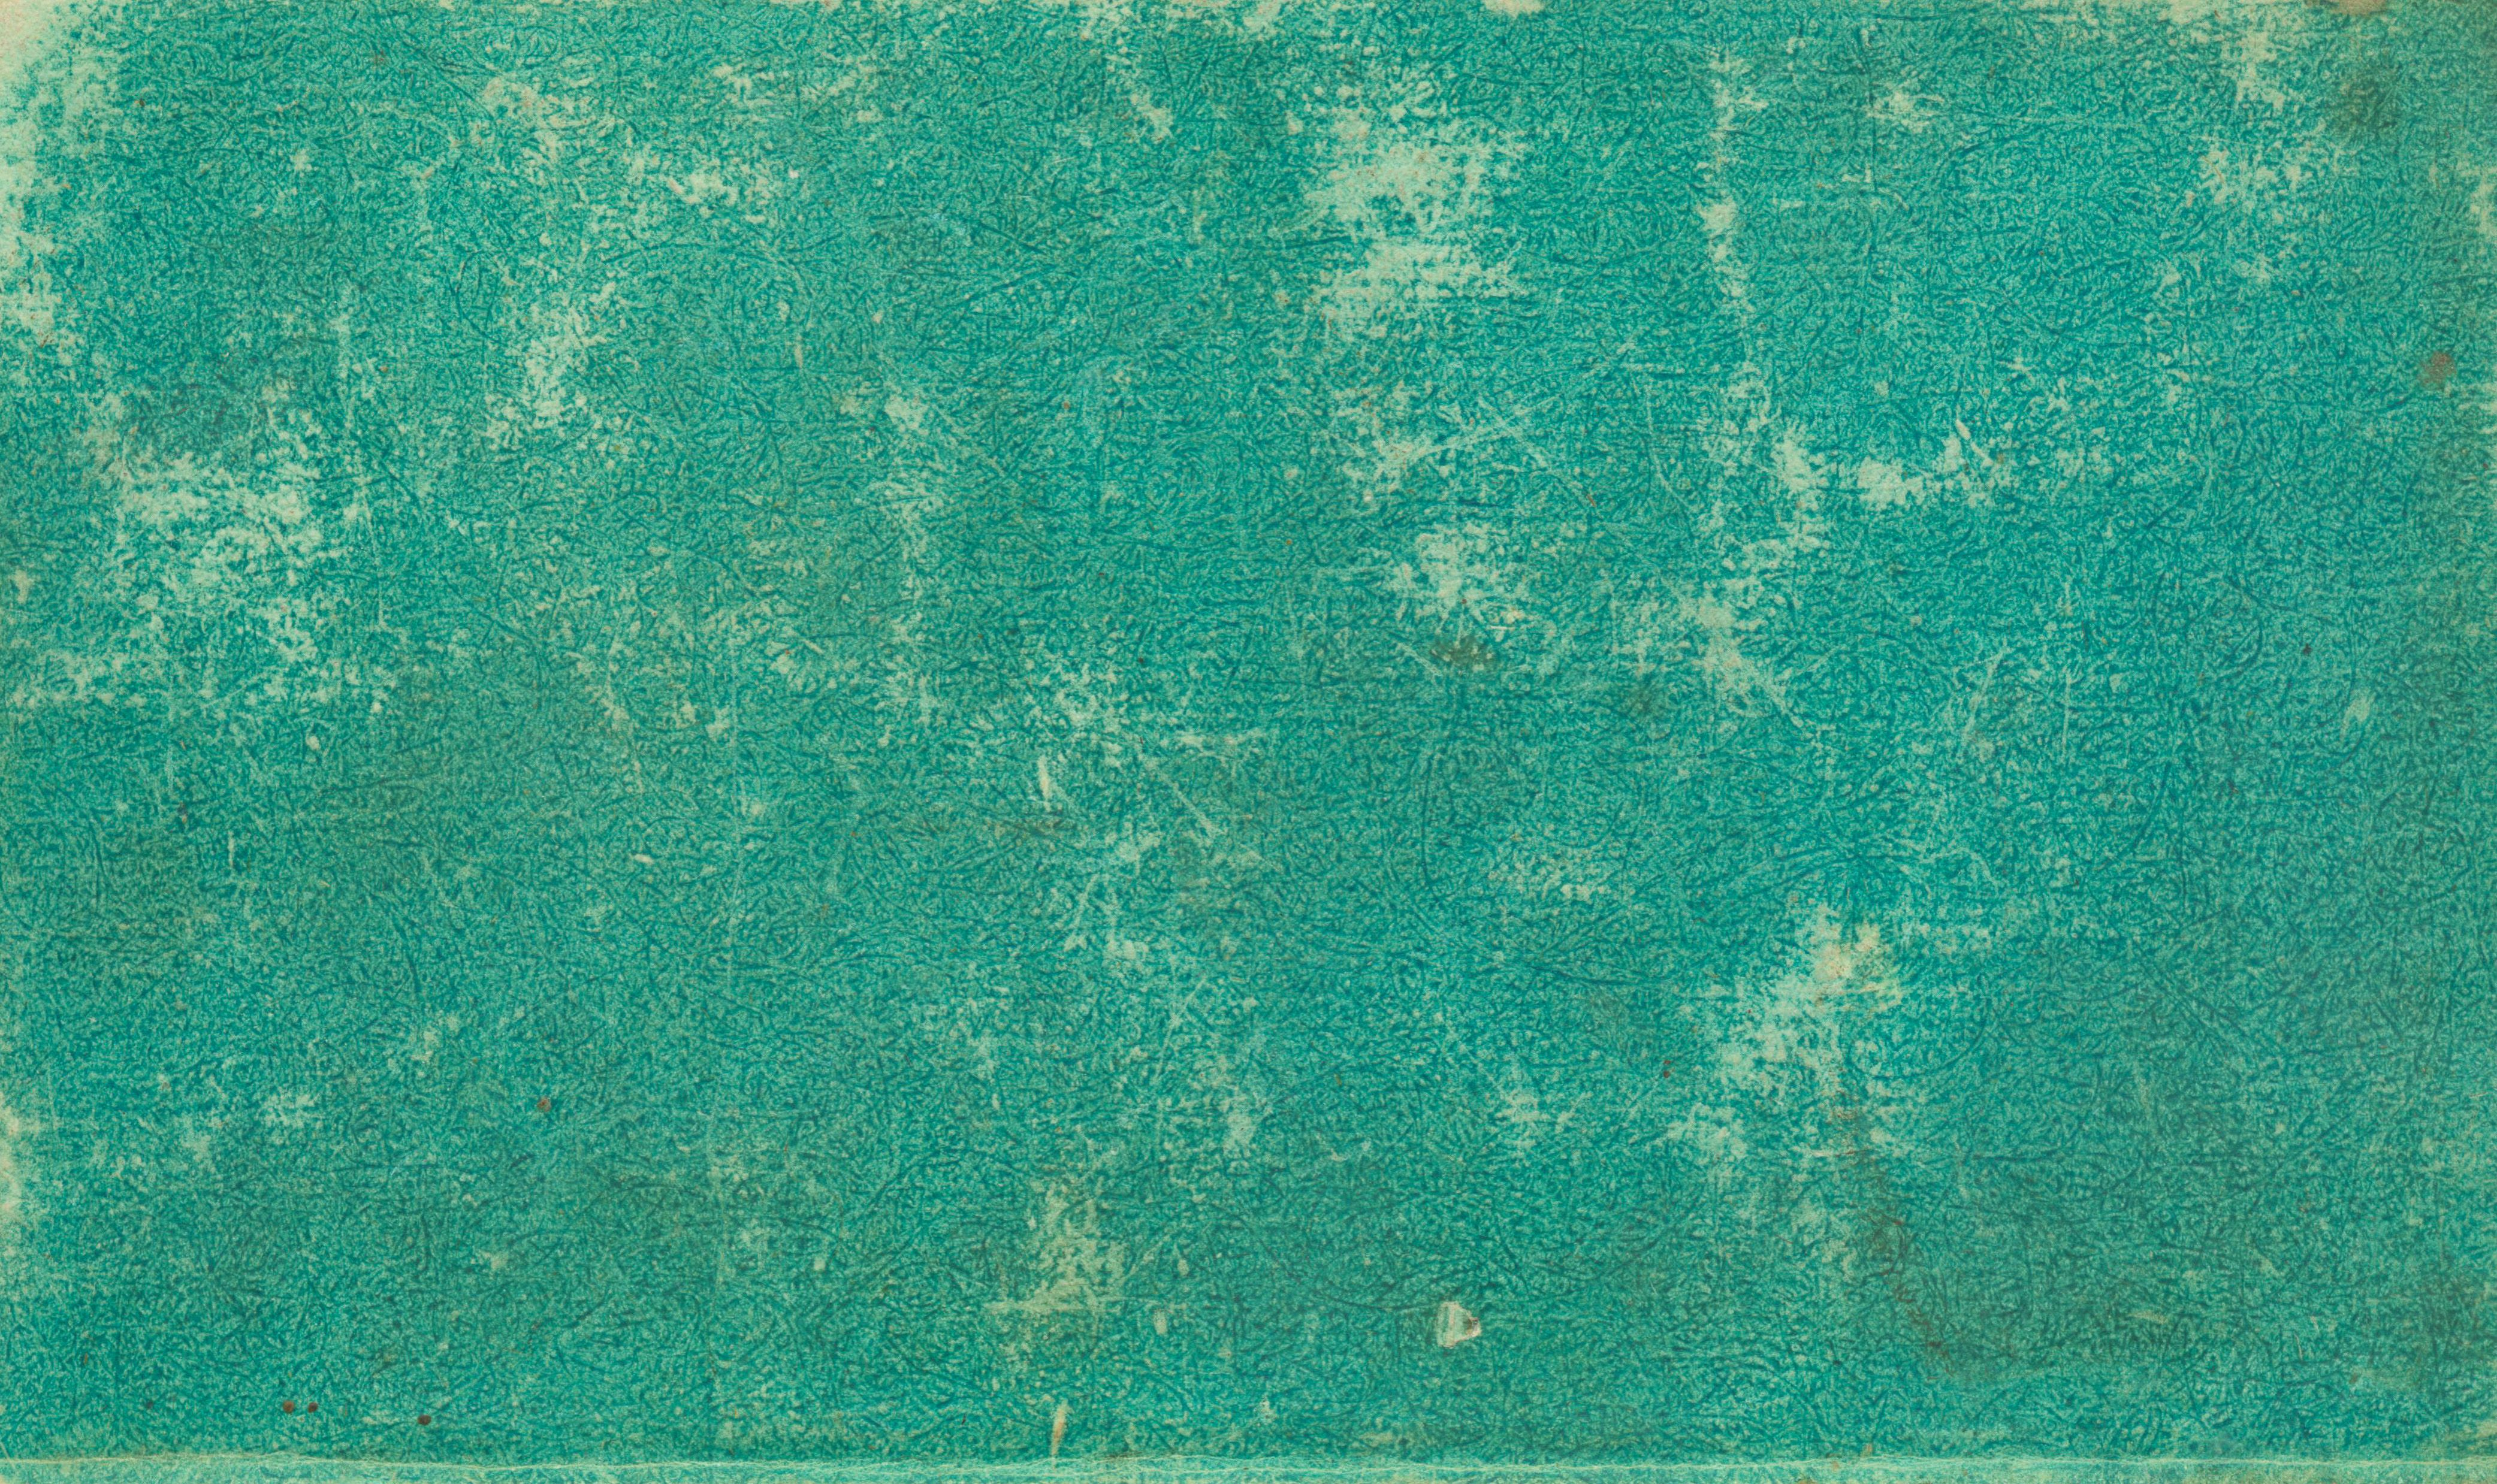 56 Hq Vintage Texture Textures For Photoshop Free Vintage Texture Book Texture Texture